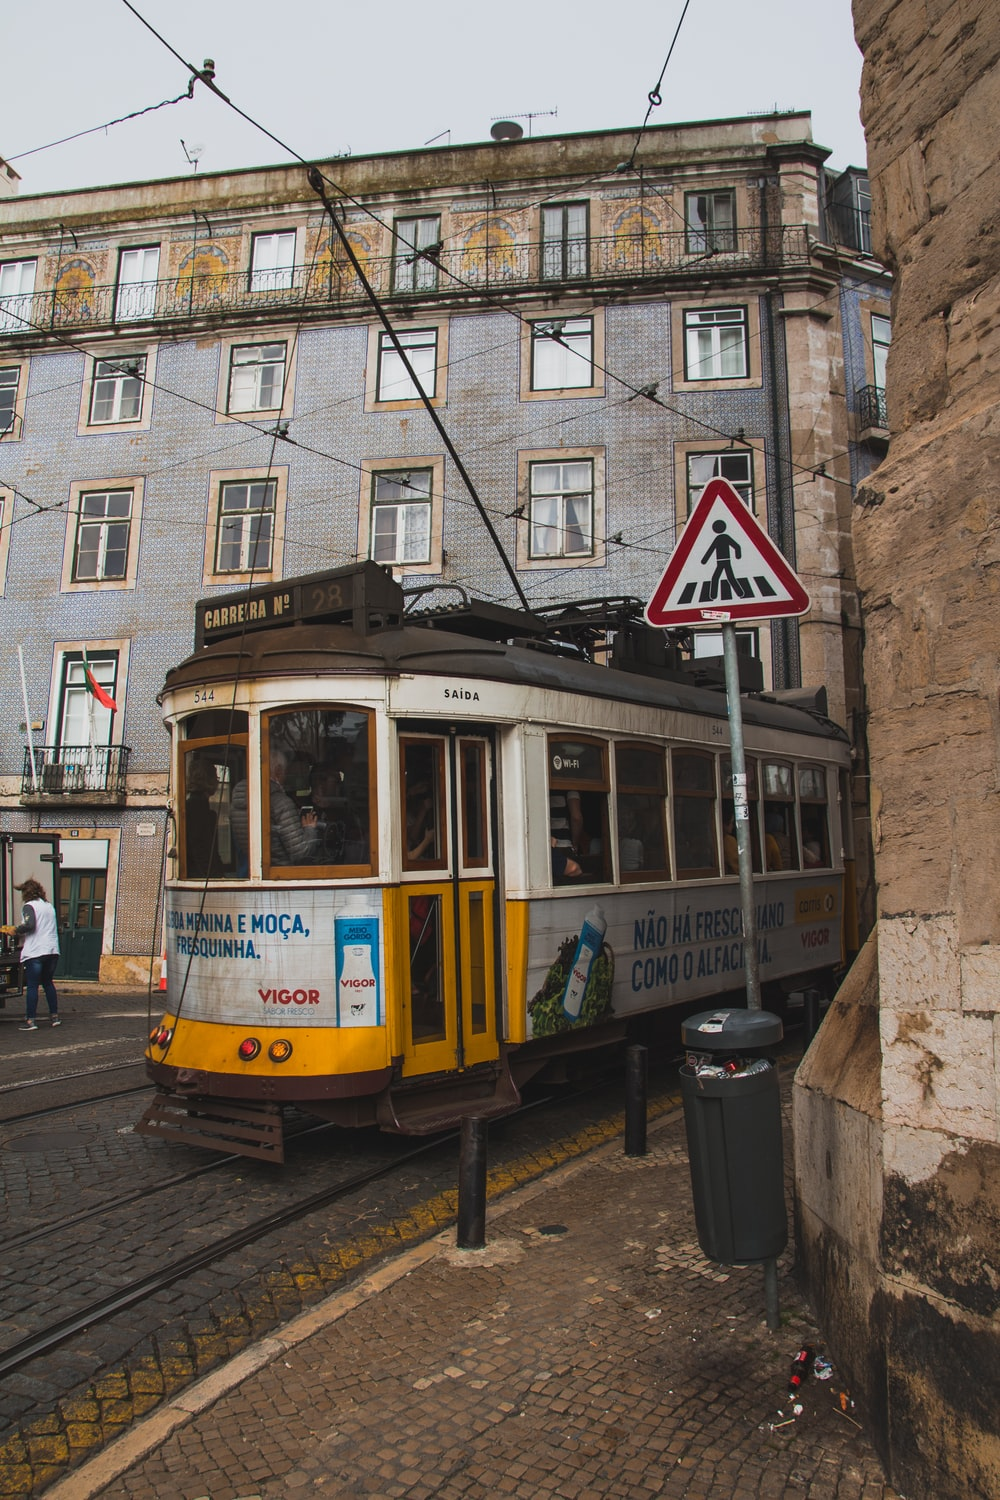 cable train beside the sidewalk and buildings during day